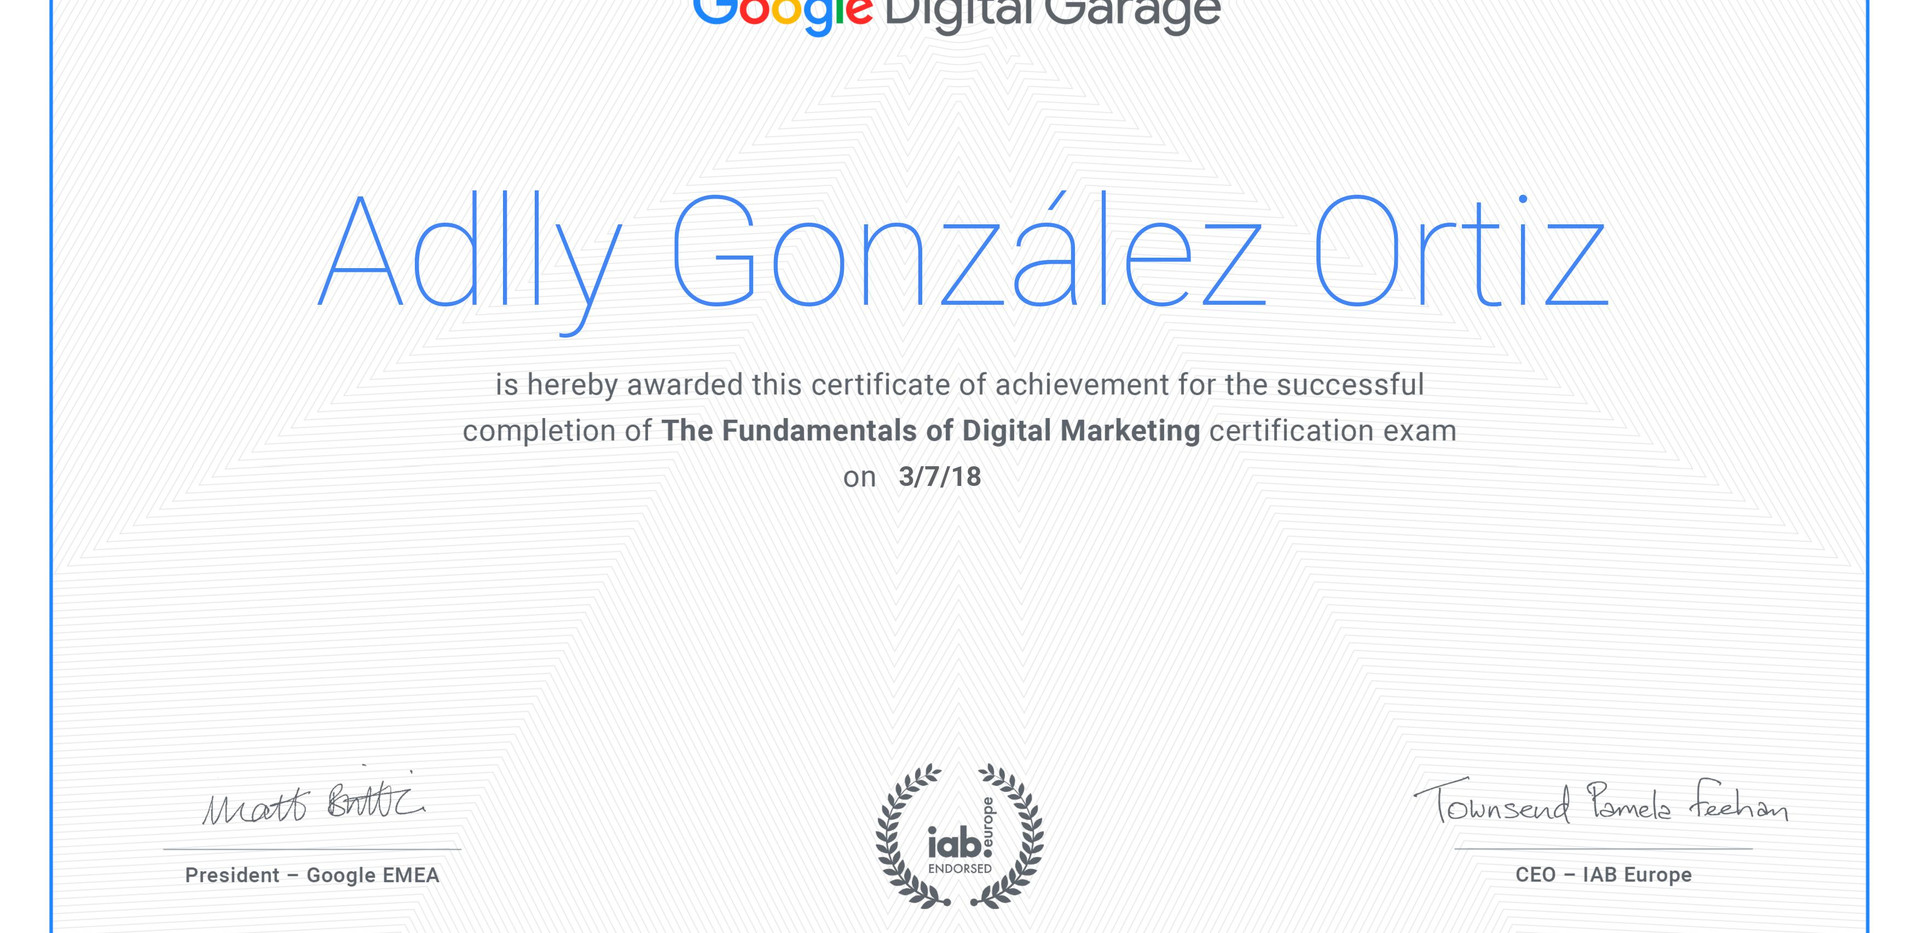 Digital Garage. Online Business Strategy Certificate.jpg